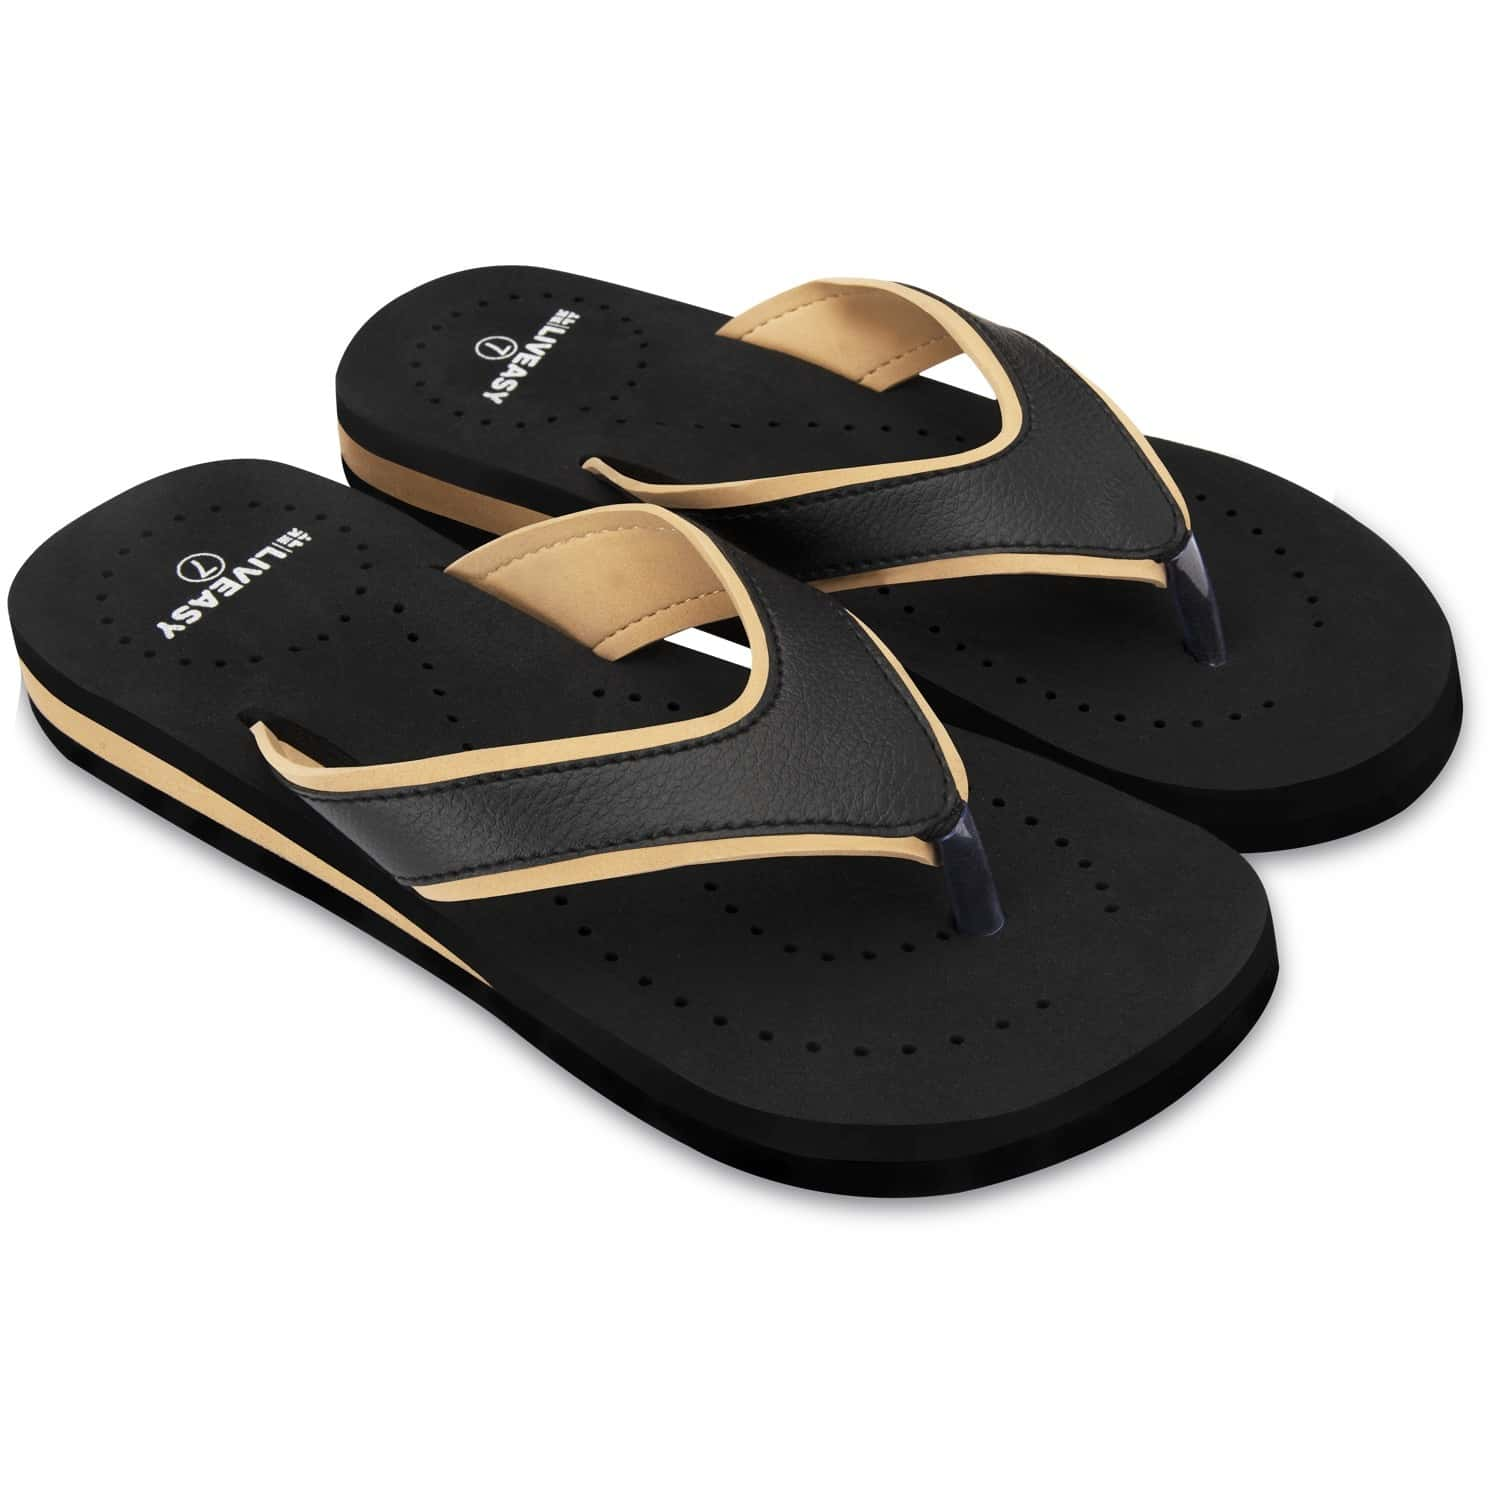 Liveasy Essentials Women's Diabetic & Orthopedic Slippers - Black With Yellow - Size Uk 7 / Us 10